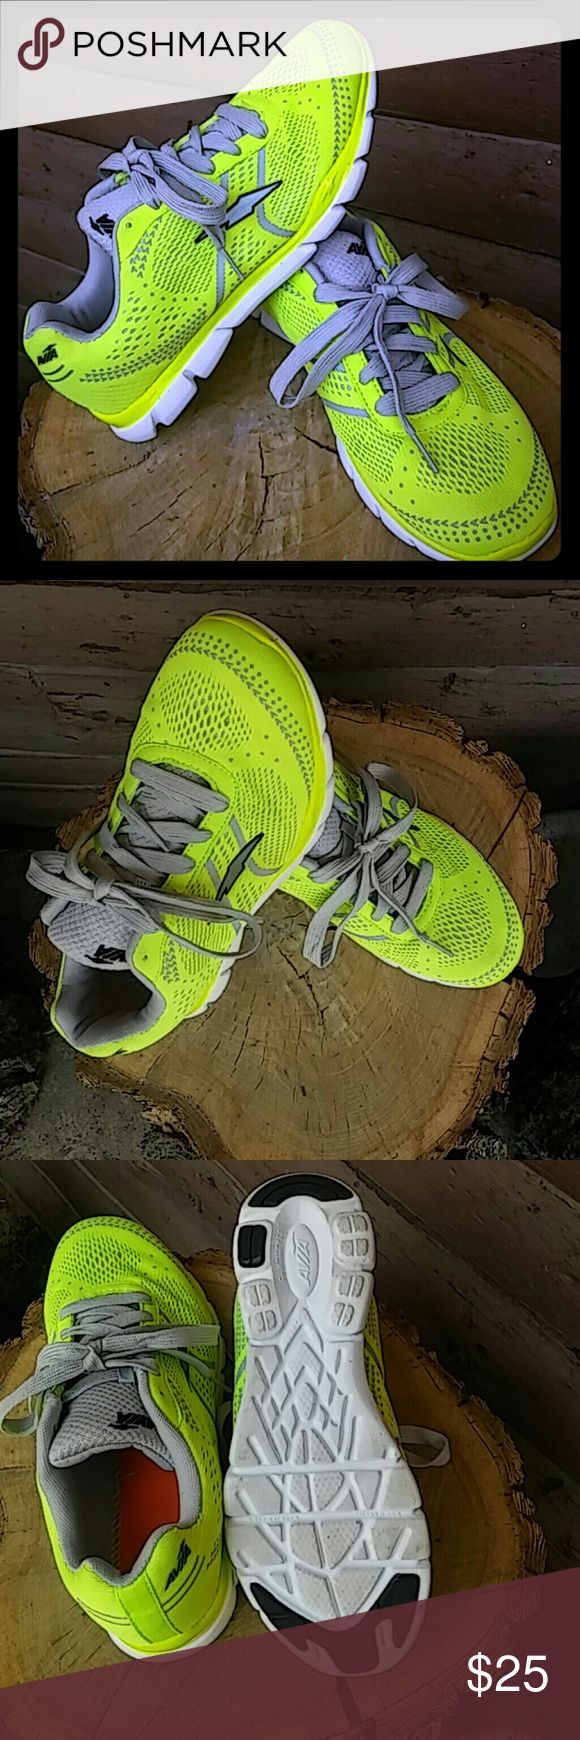 Avia Womens Brand New Neon Running Shoes Bright neon yellow and light grey Avia running shoes. Never been worn, in brand new condition. Avia Shoes Athletic Shoes